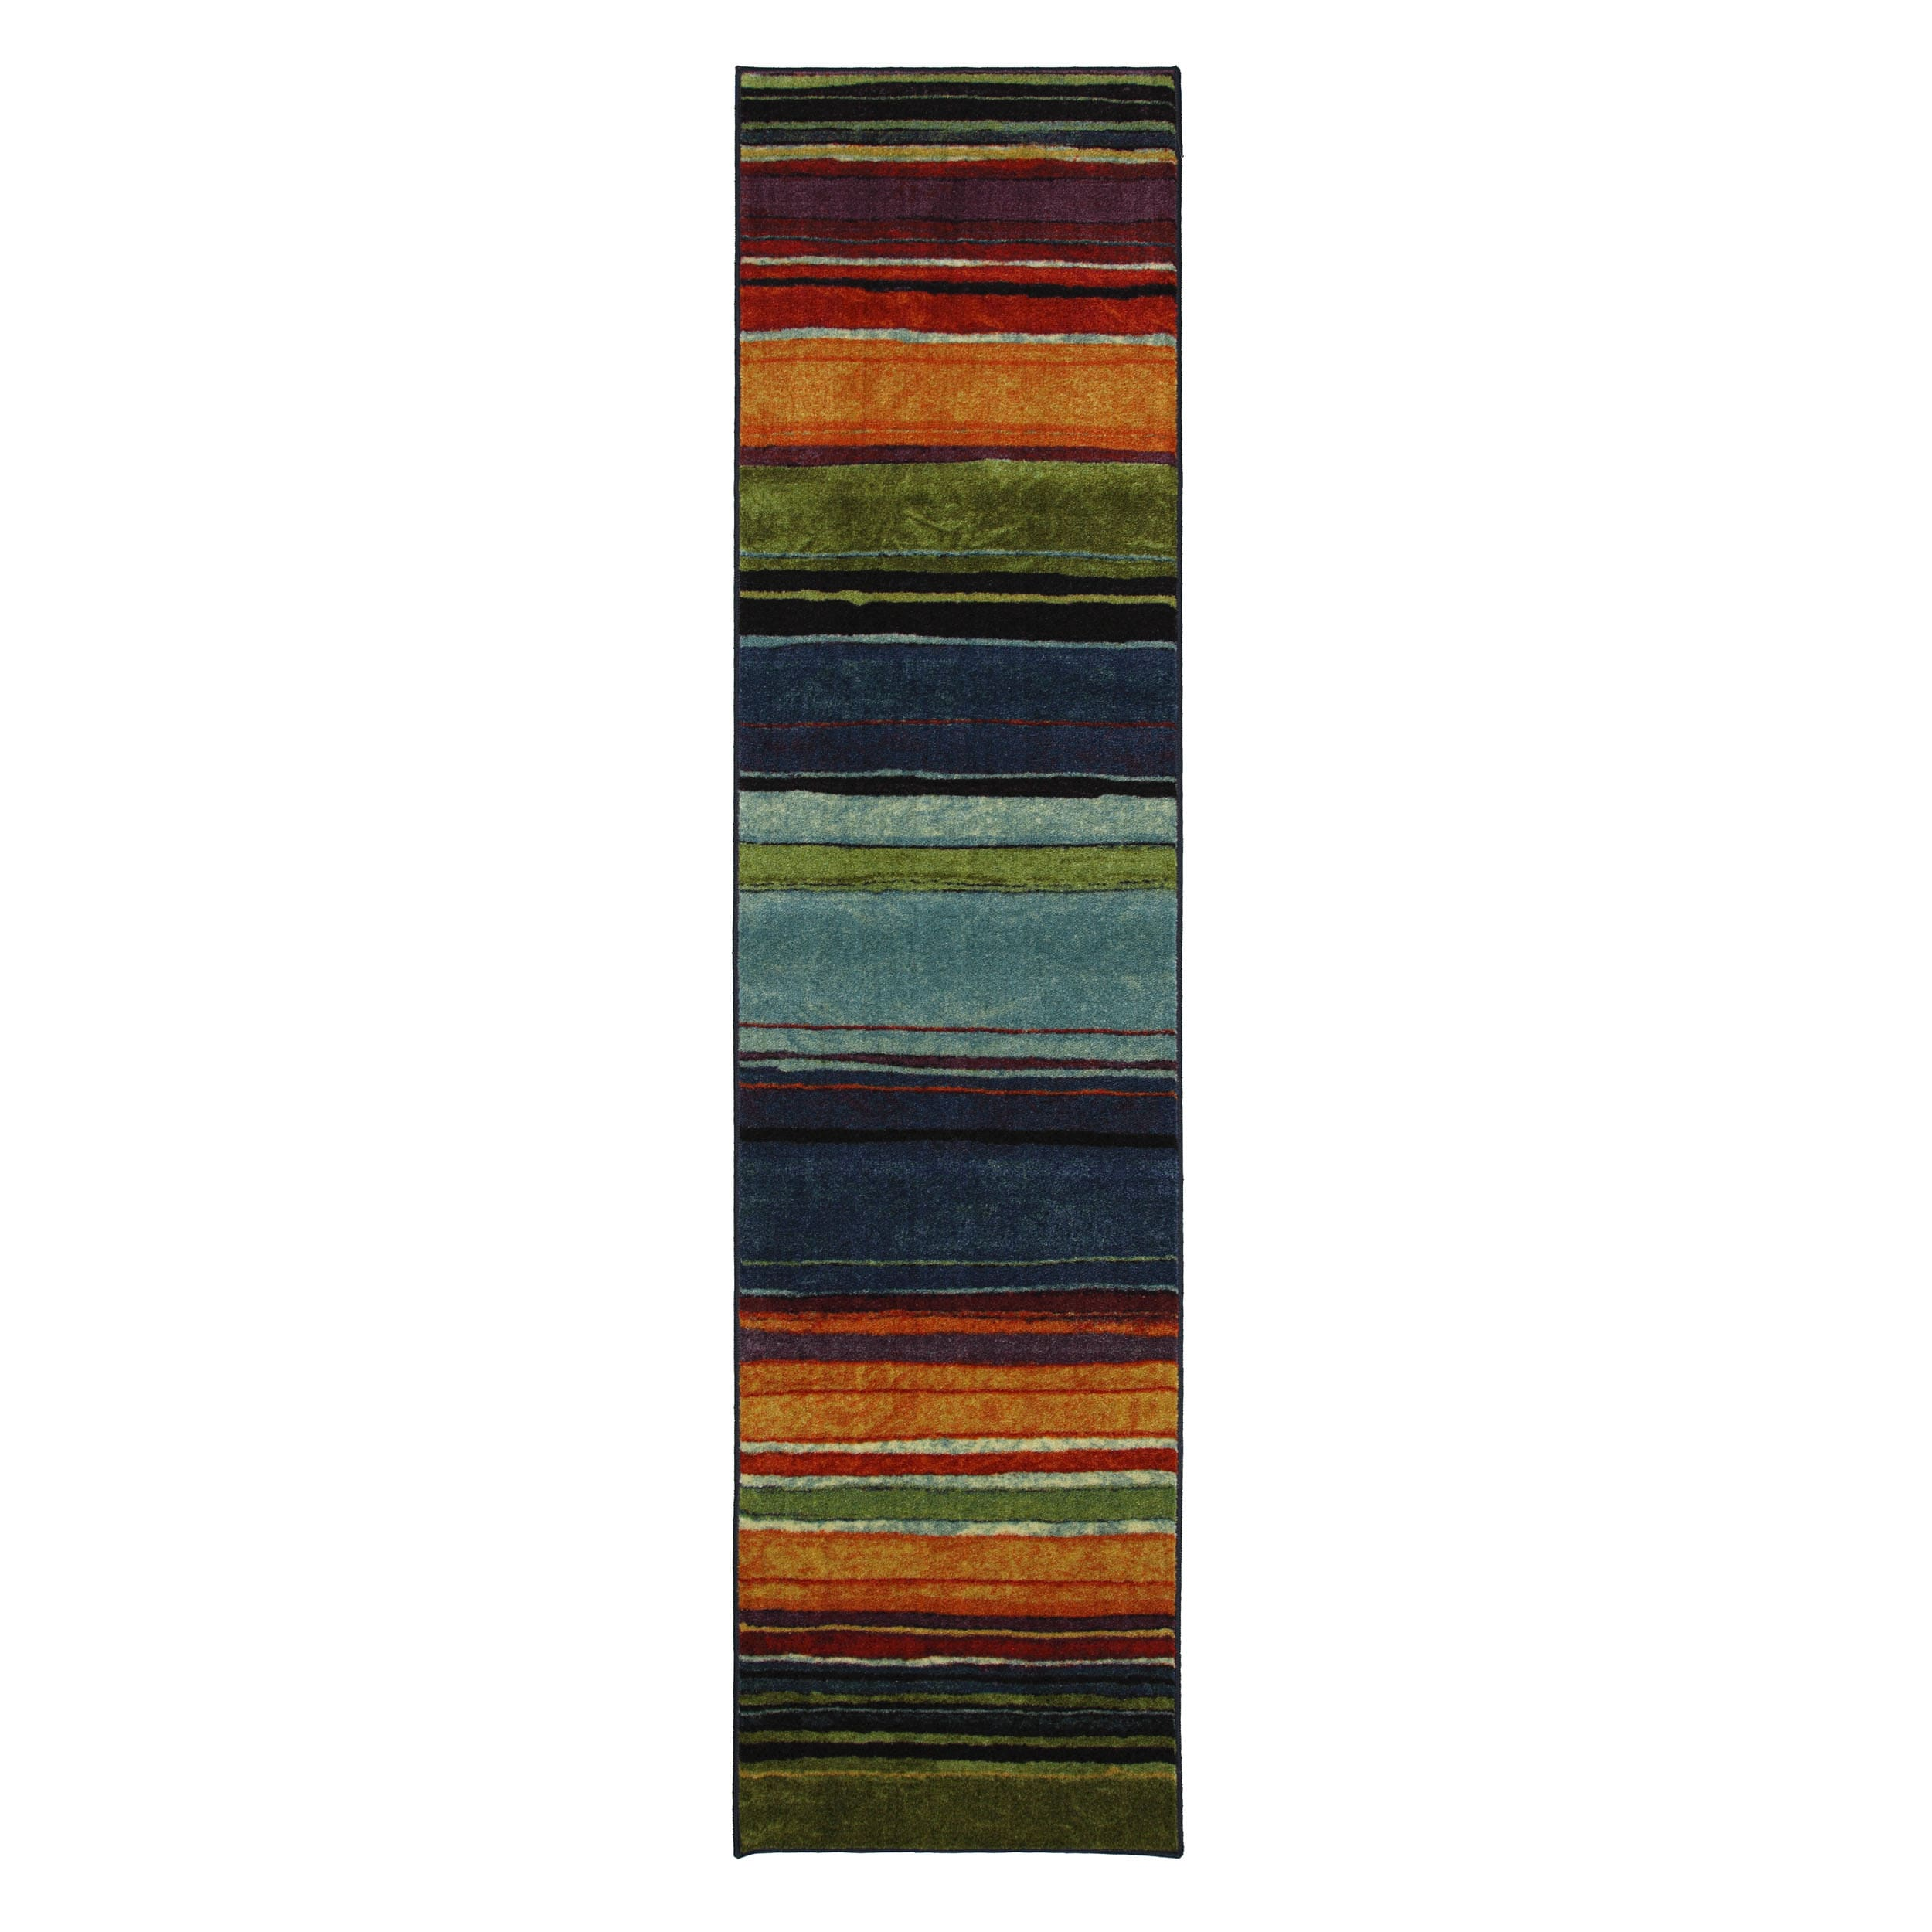 Overstock shopping great deals on mohawk home runner rugs